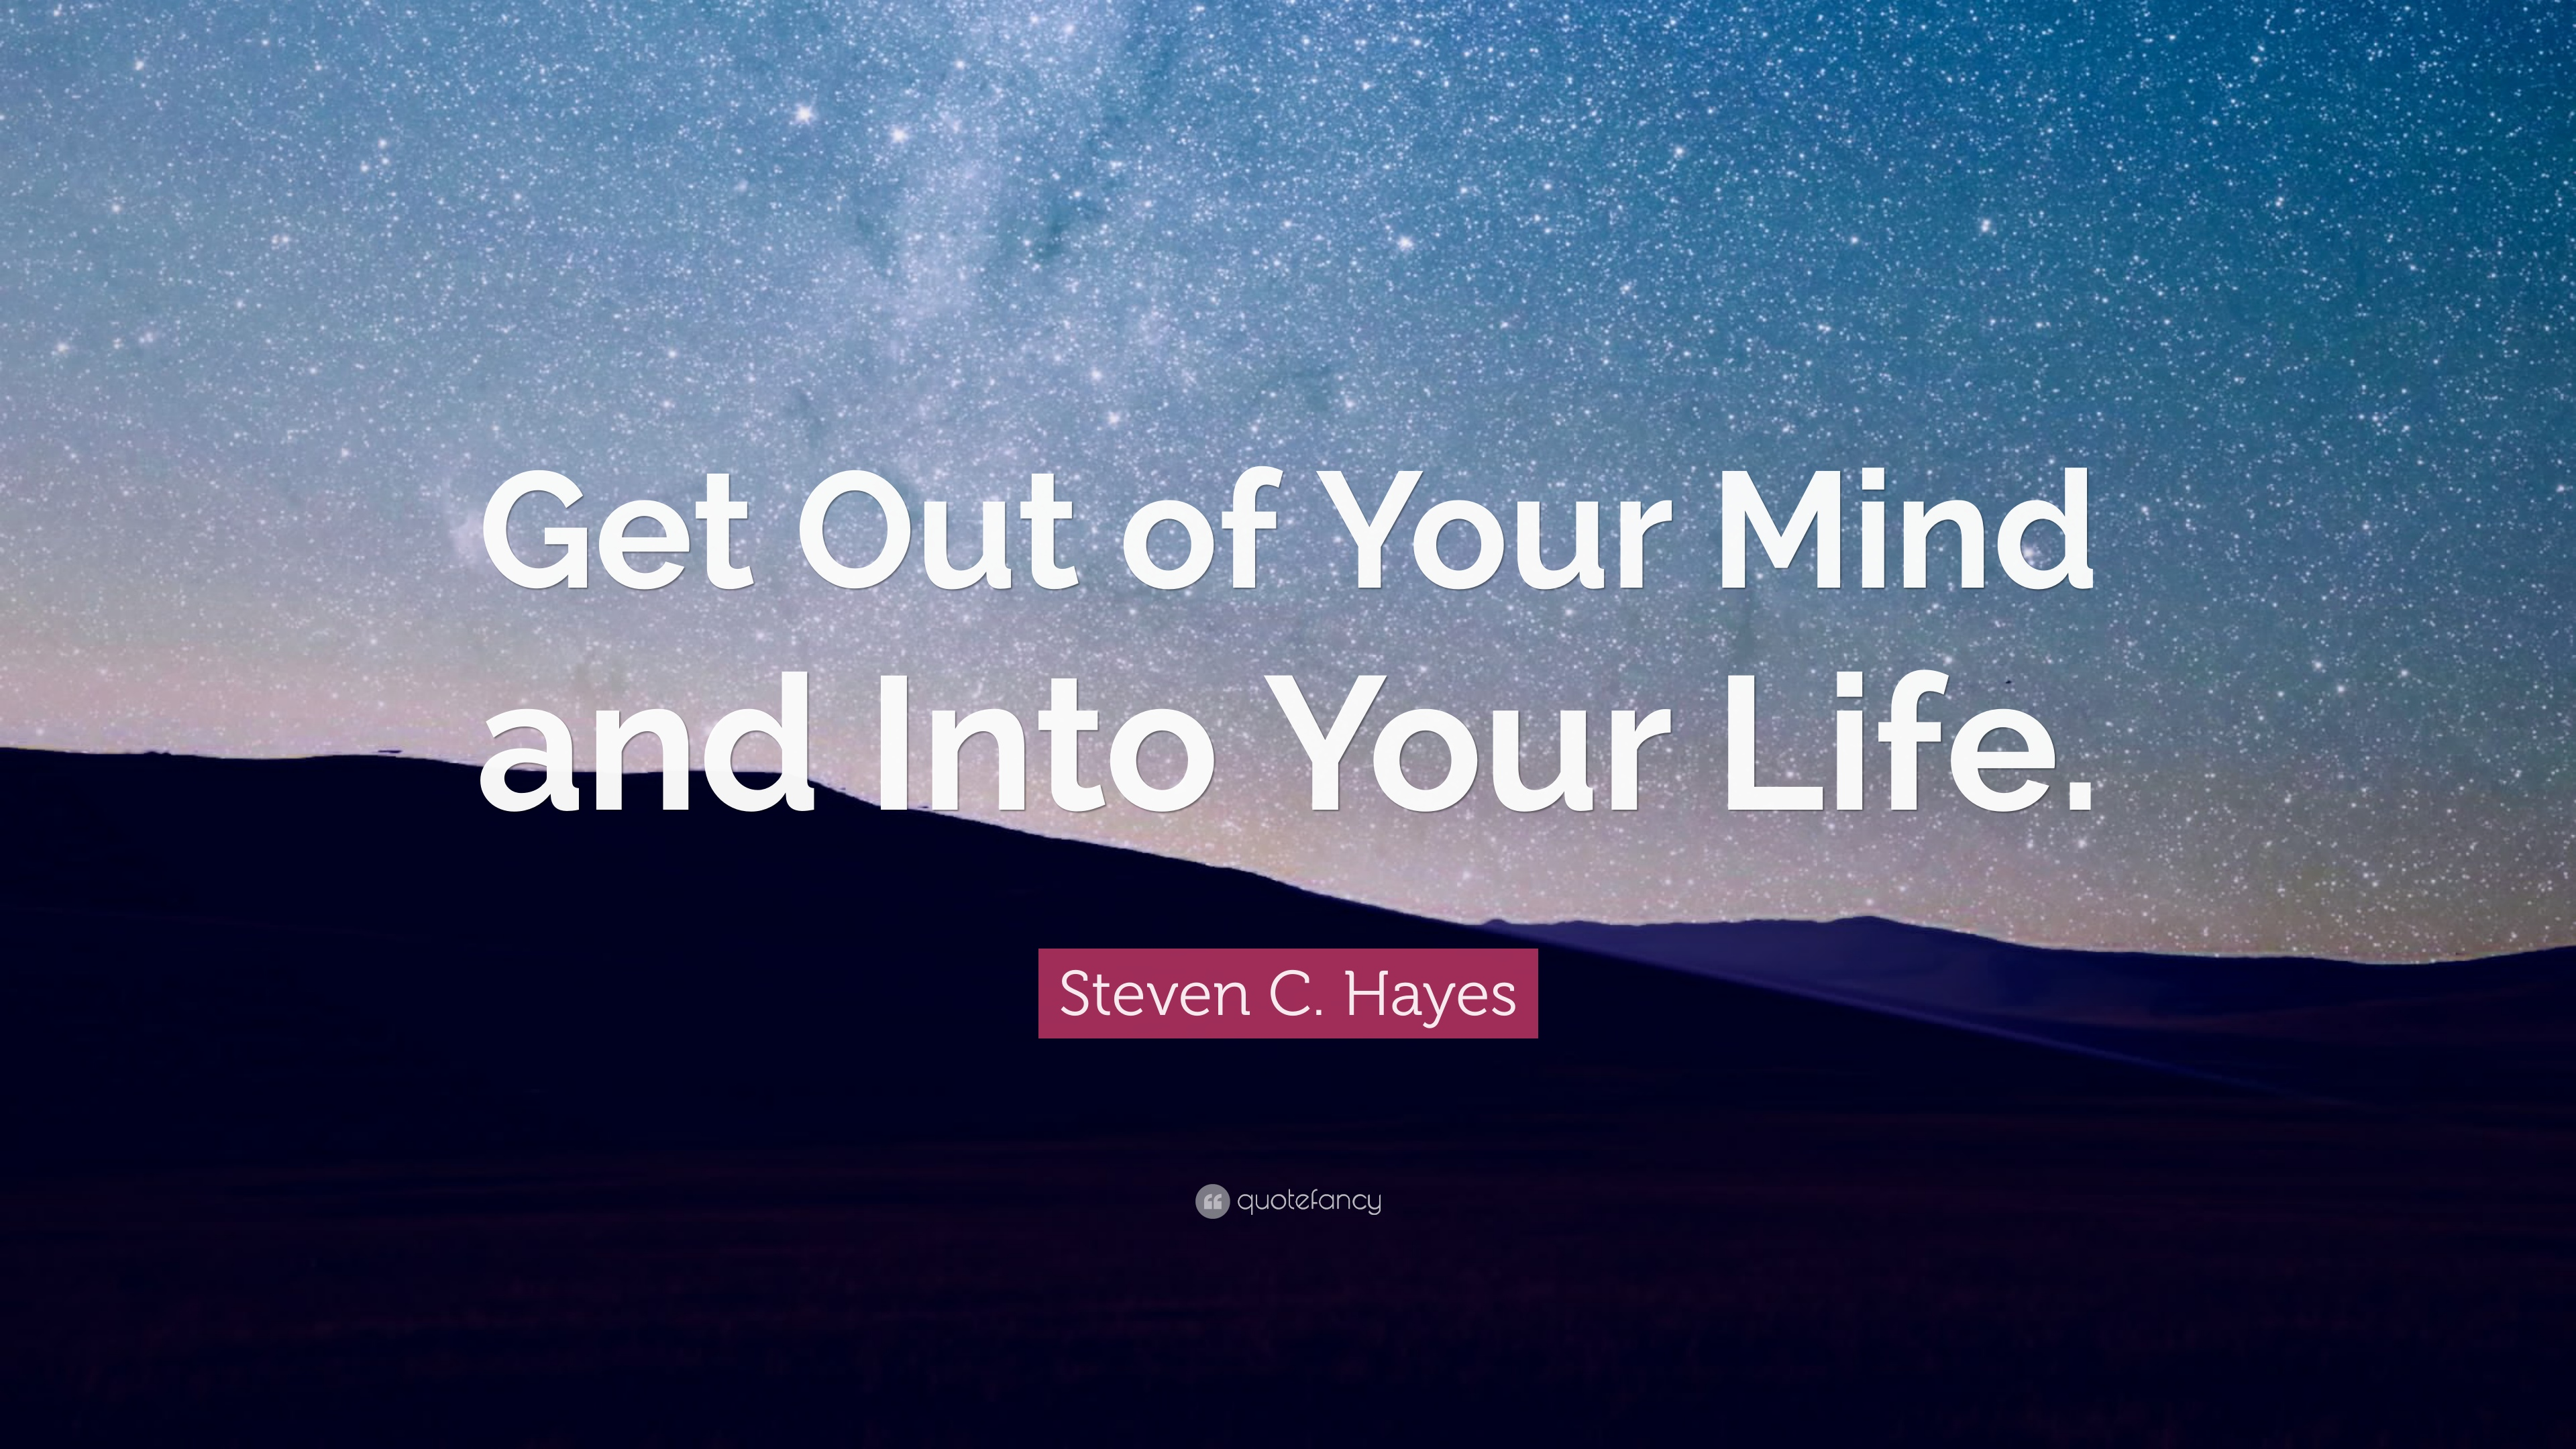 how to come out of mind and into your life